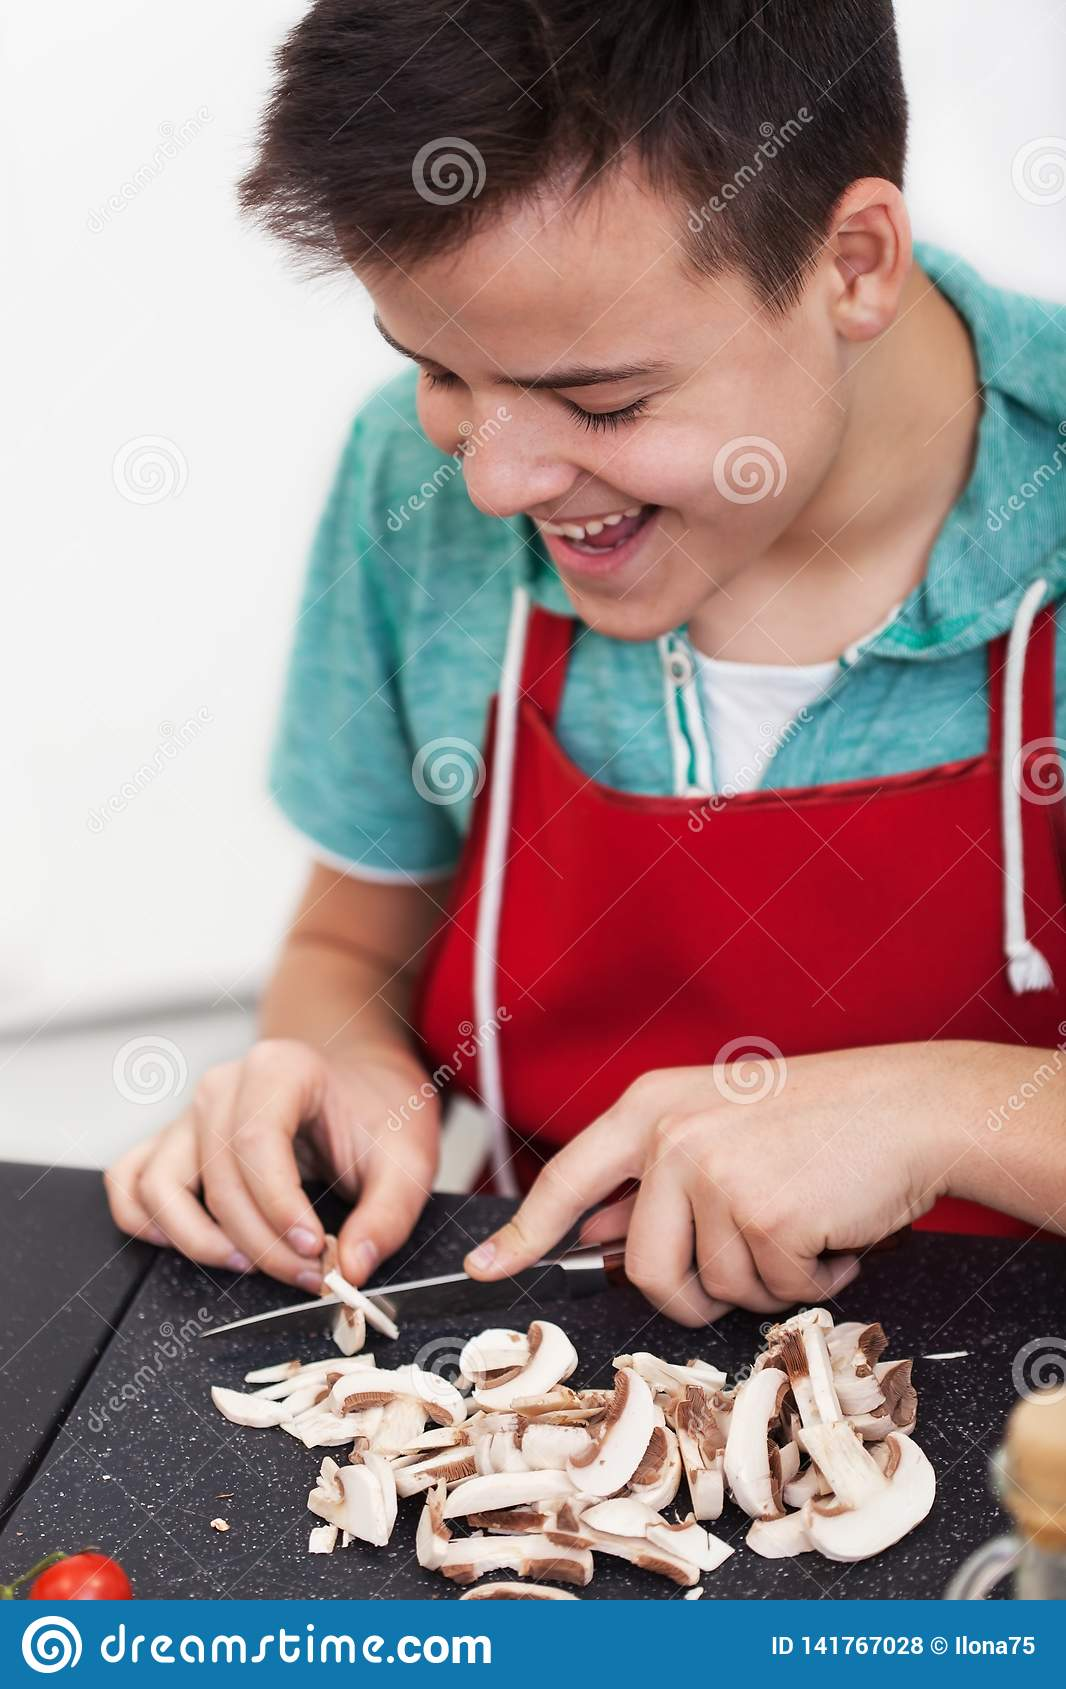 Young happy boy preparing a dish in the kitchen - slice mushrooms on cutting board